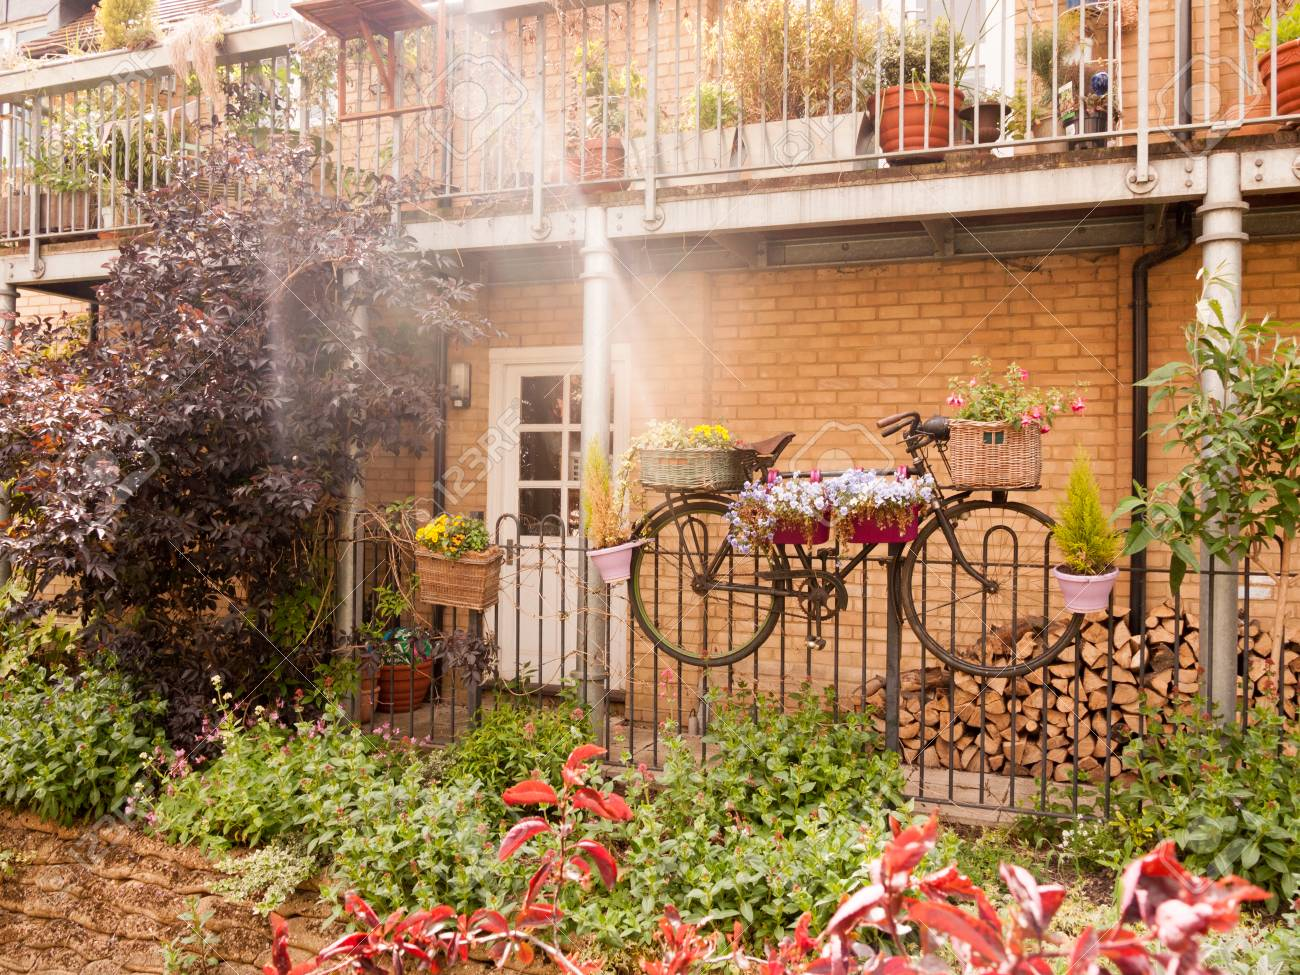 Beautiful Outside Garden Scene With A Bike With Flowers In Basket And Plant  Pots Summer Late